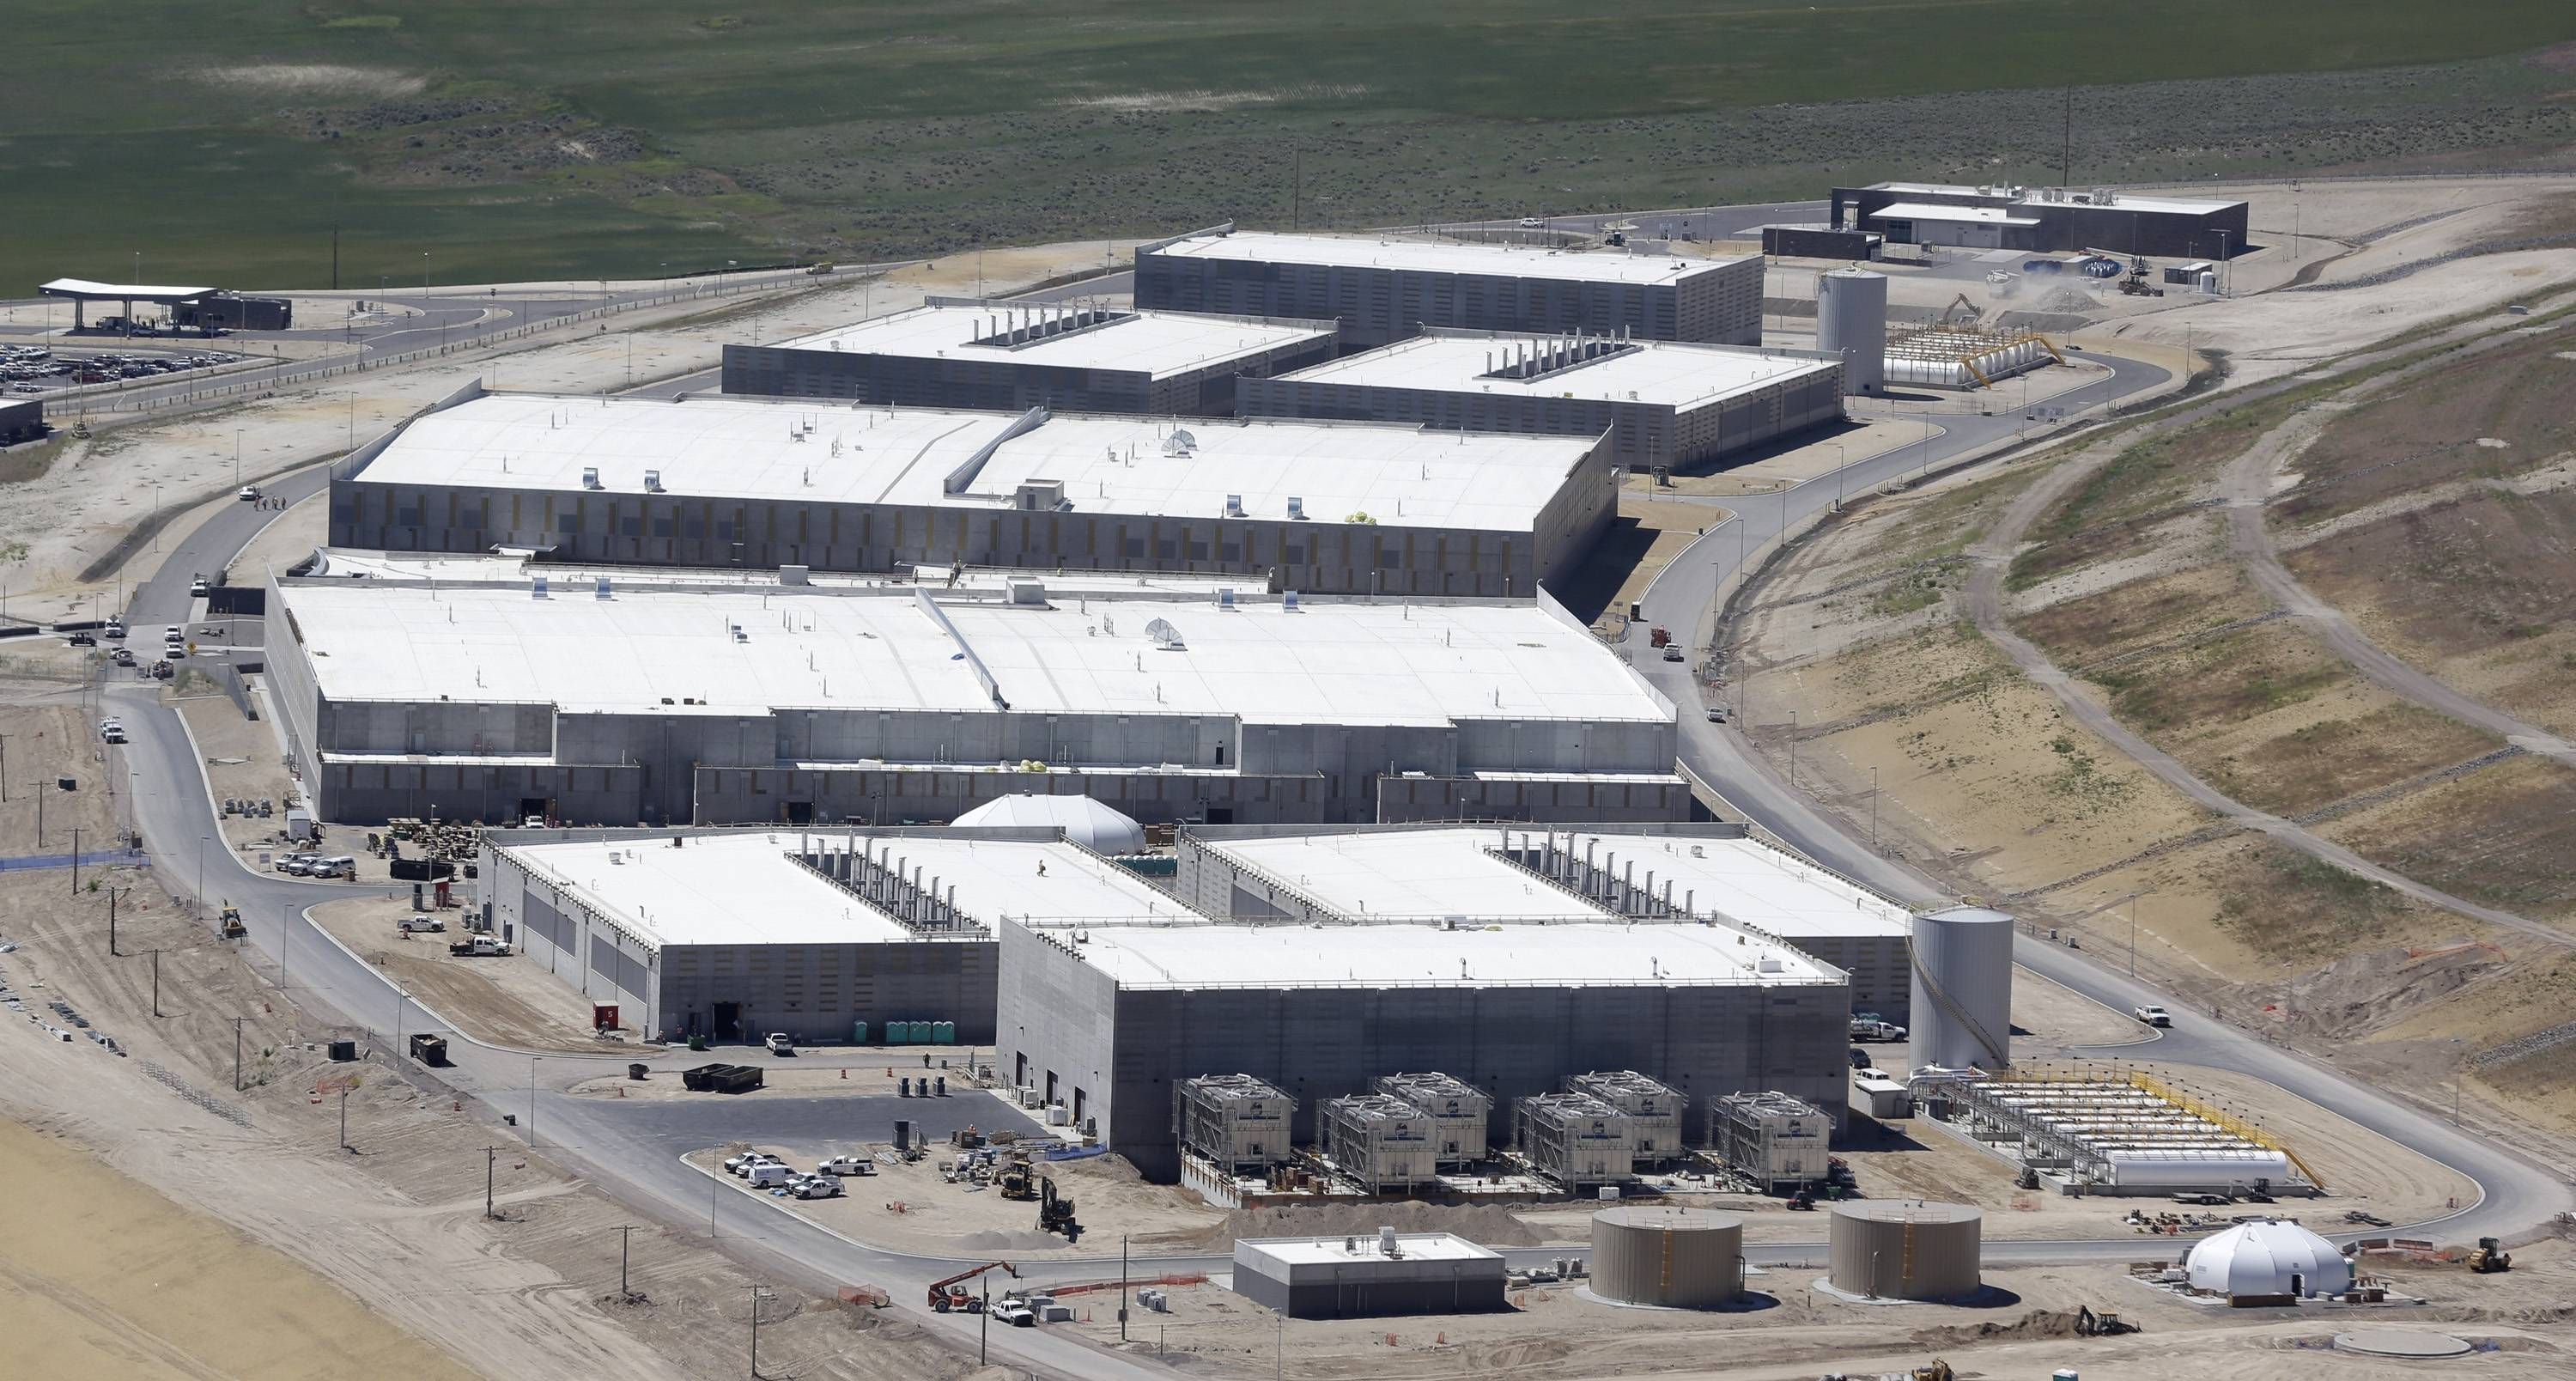 Associated Press/June 6, 2013 The National Security Agency's Utah Data Center in Bluffdale, Utah.